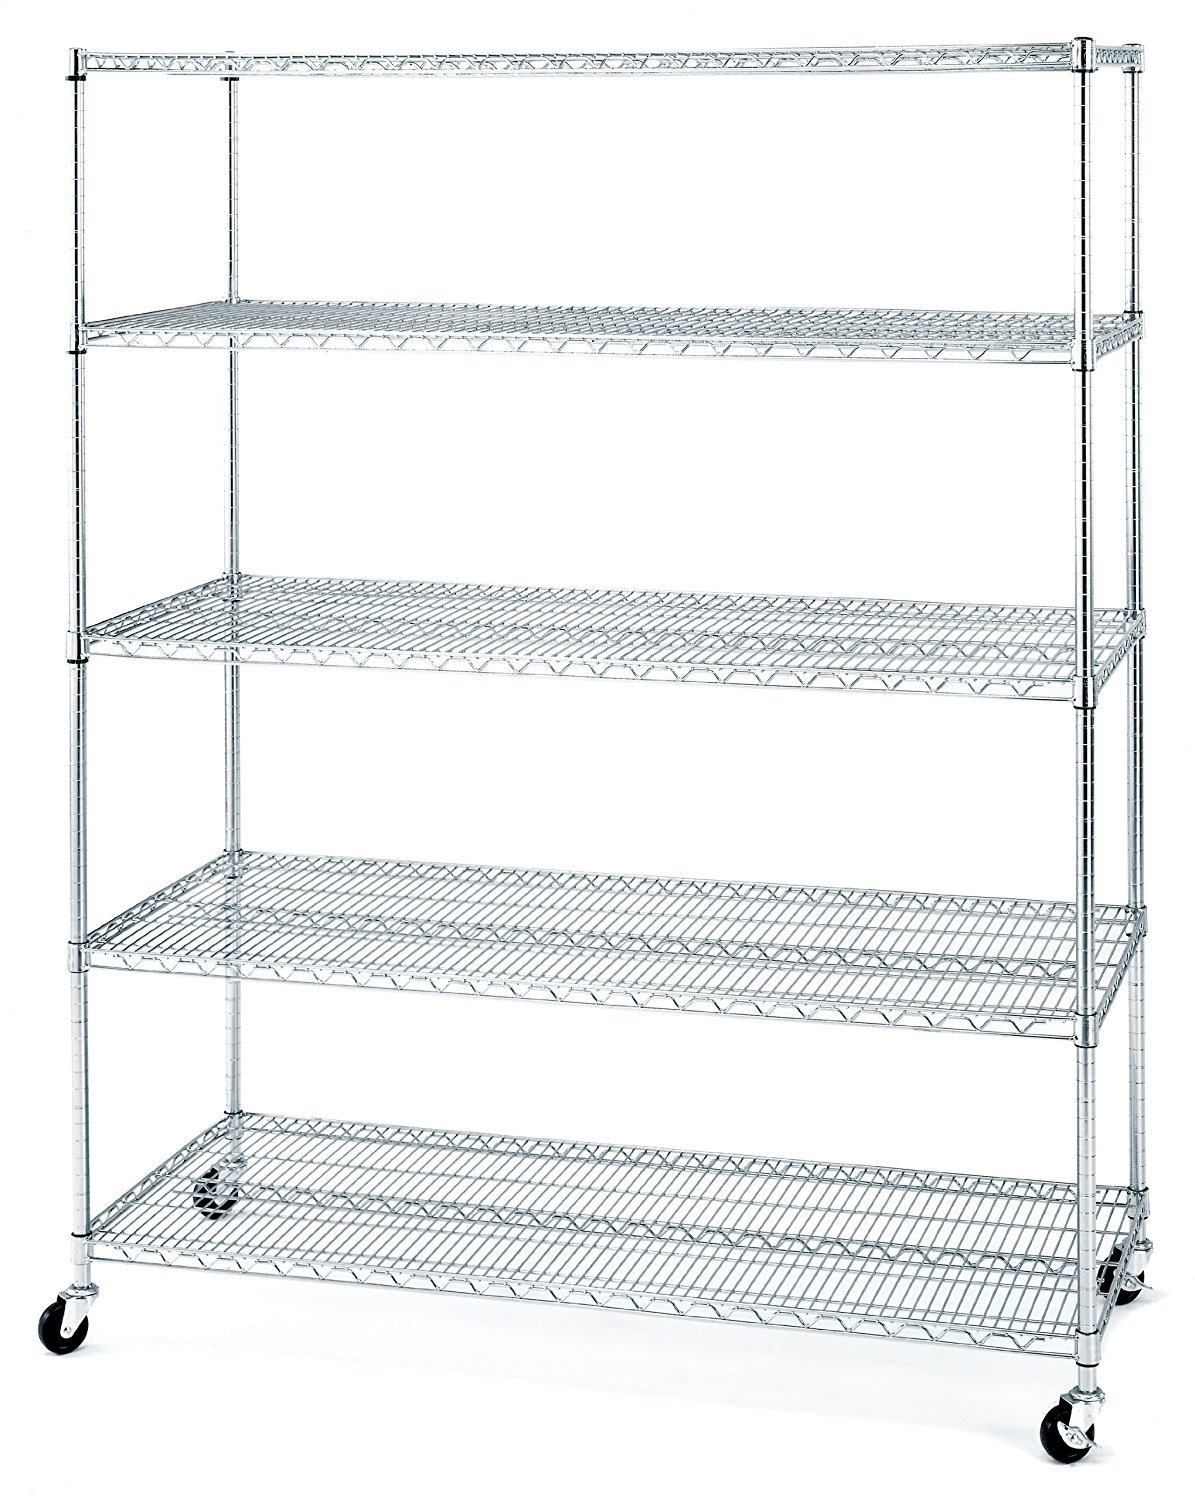 Seville Classics 5-Tier UltraZinc NSF Steel Wire Shelving /w Wheels, 24'' D x 60'' W x 72'' H